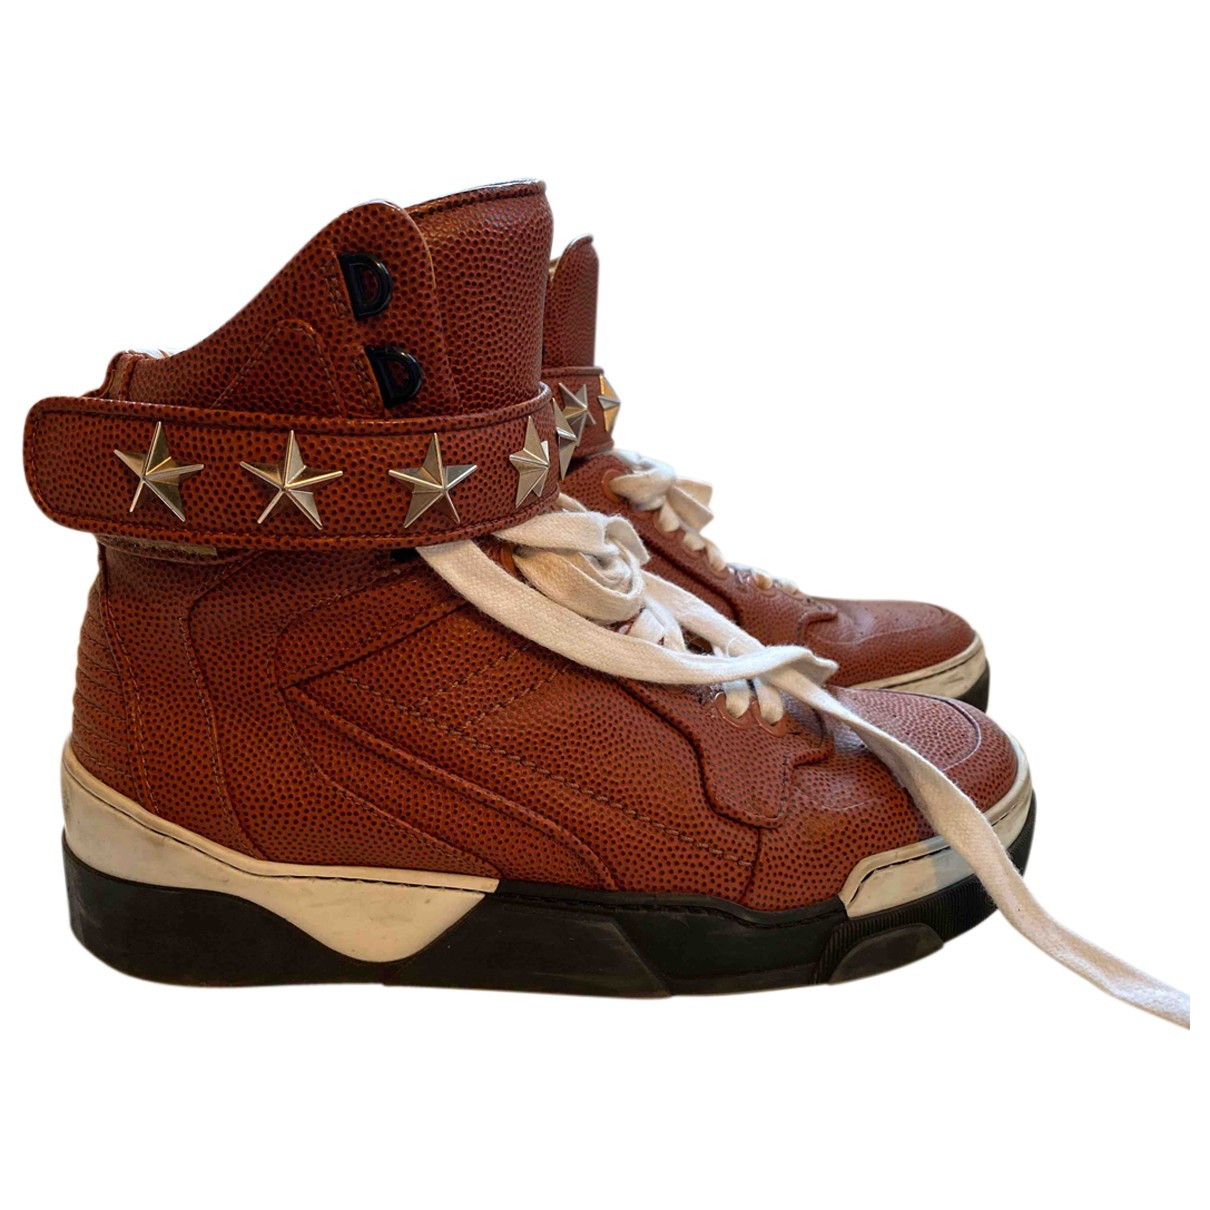 Givenchy \N Sneakers in  Braun Leder